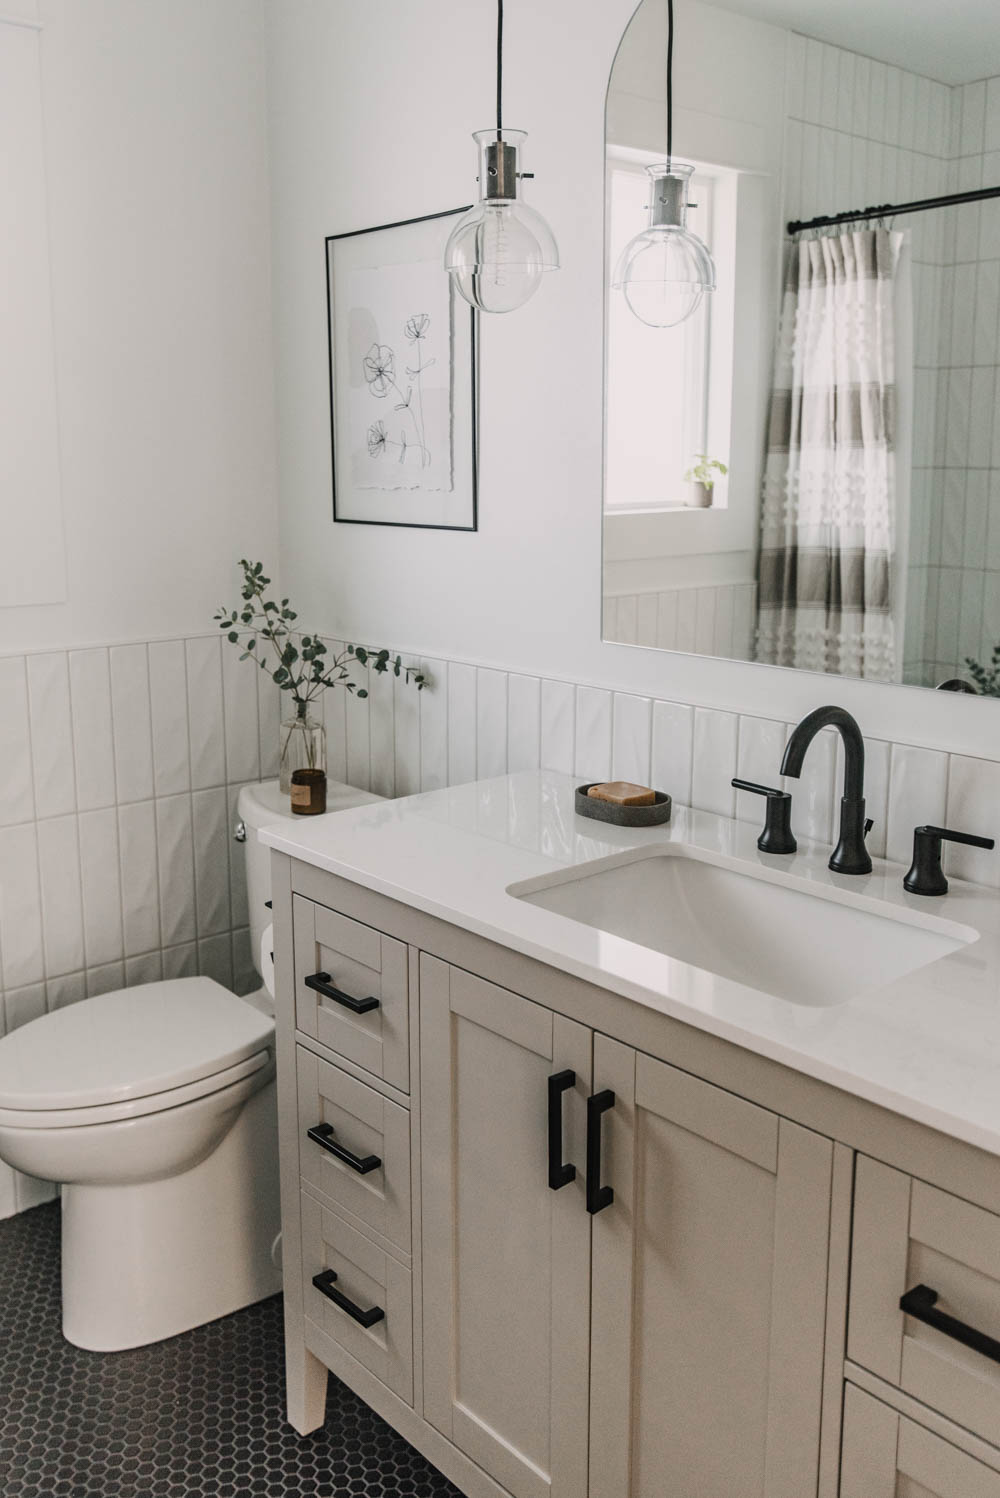 Total Bathroom Remodel!